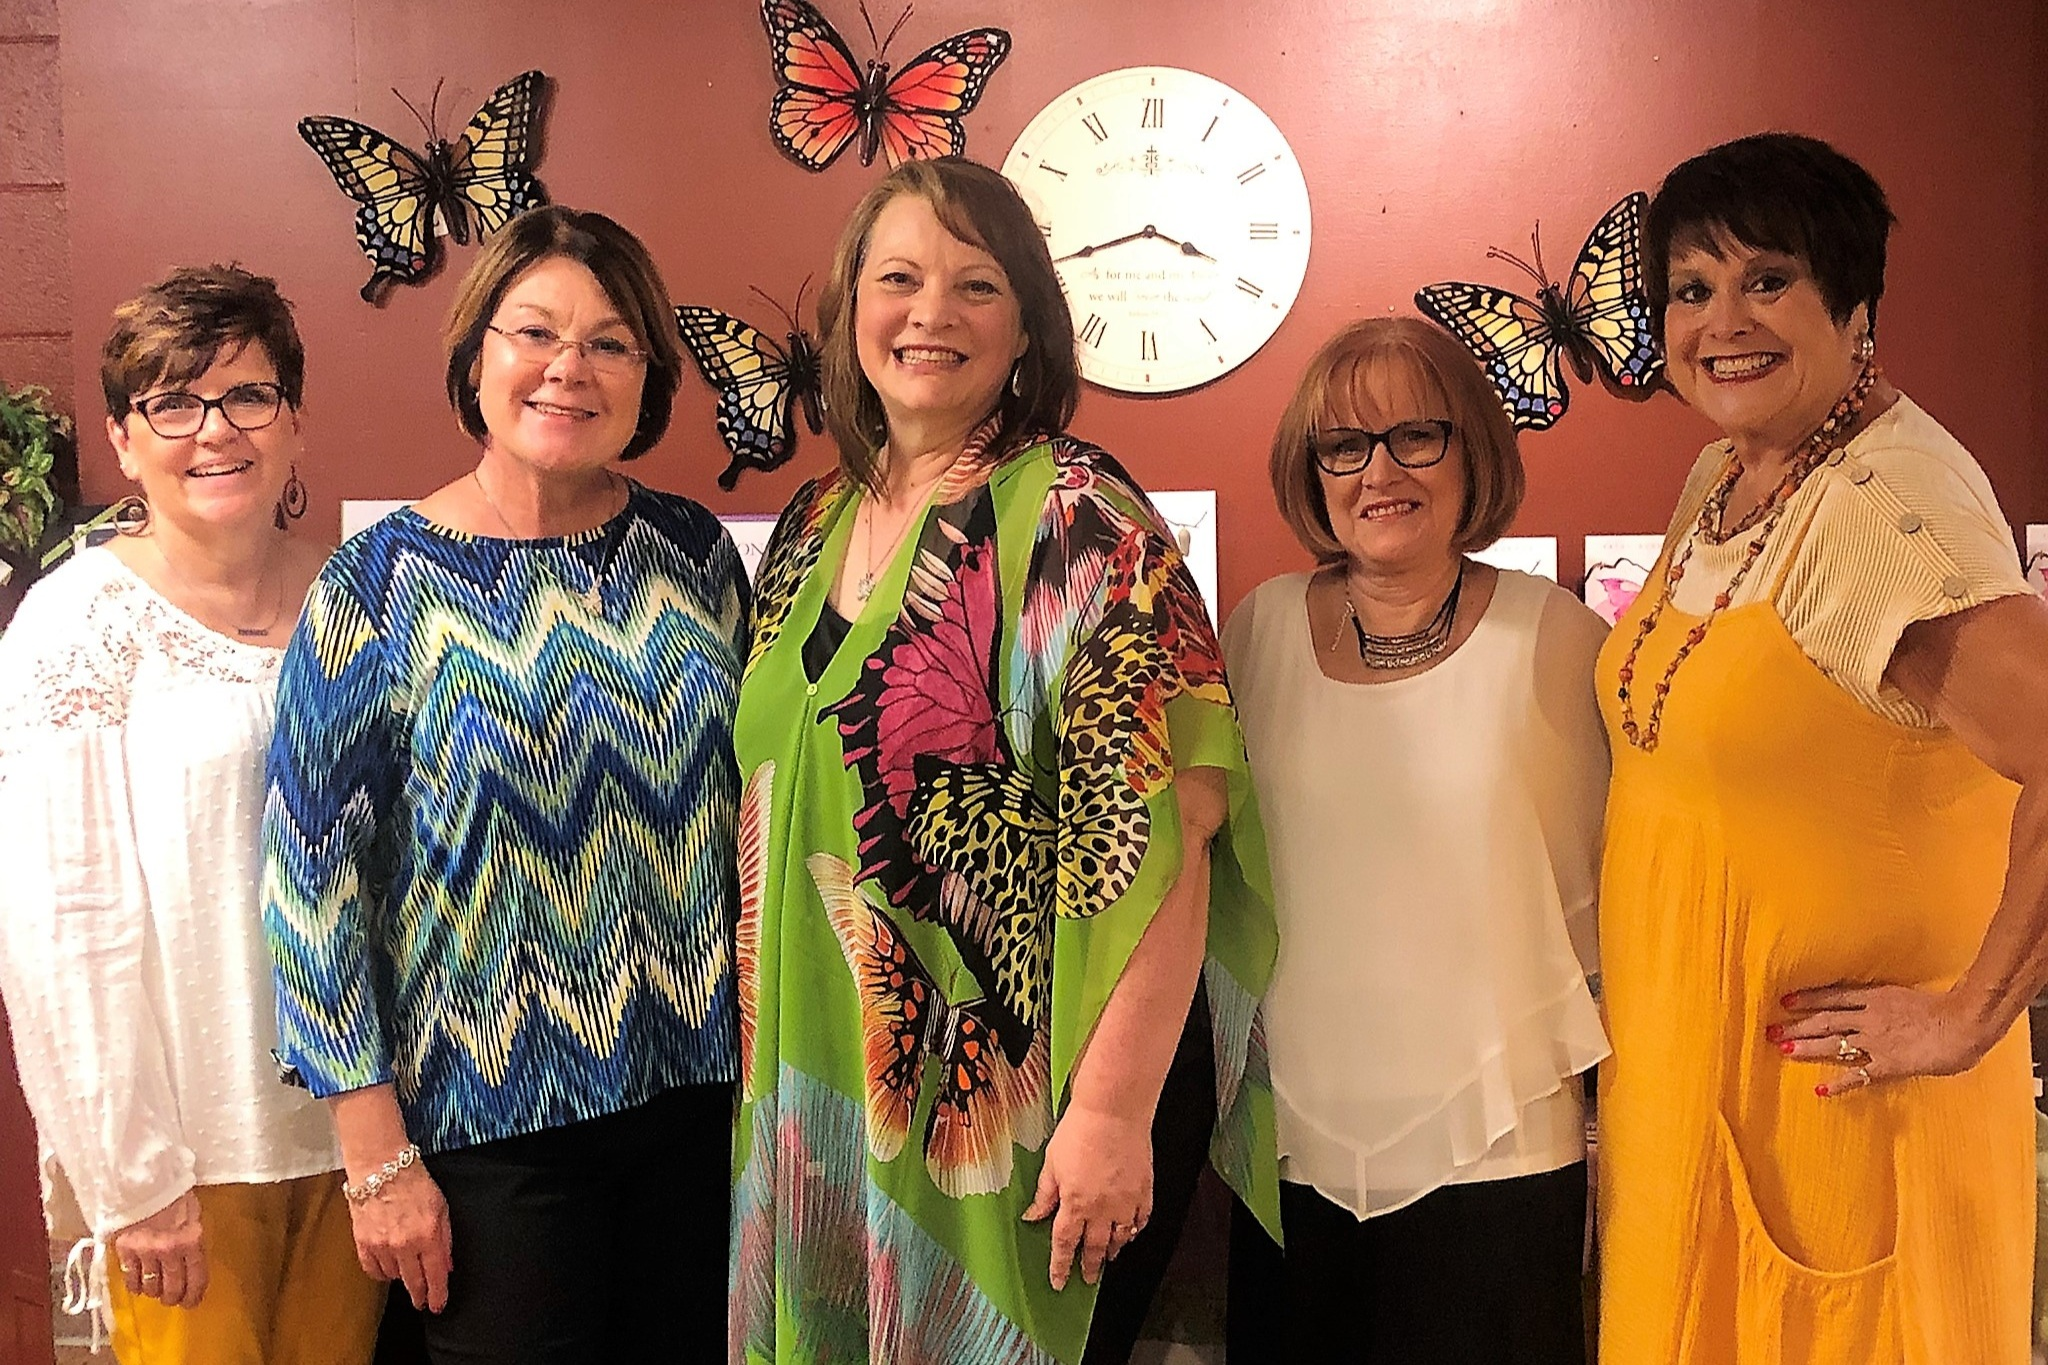 A Dream Team for sure! Meet the ladies who made it happen! L to R: Deb Gyetvai, Janice Rayl, Kathy, Barb Flynn, Jenny Sowers.